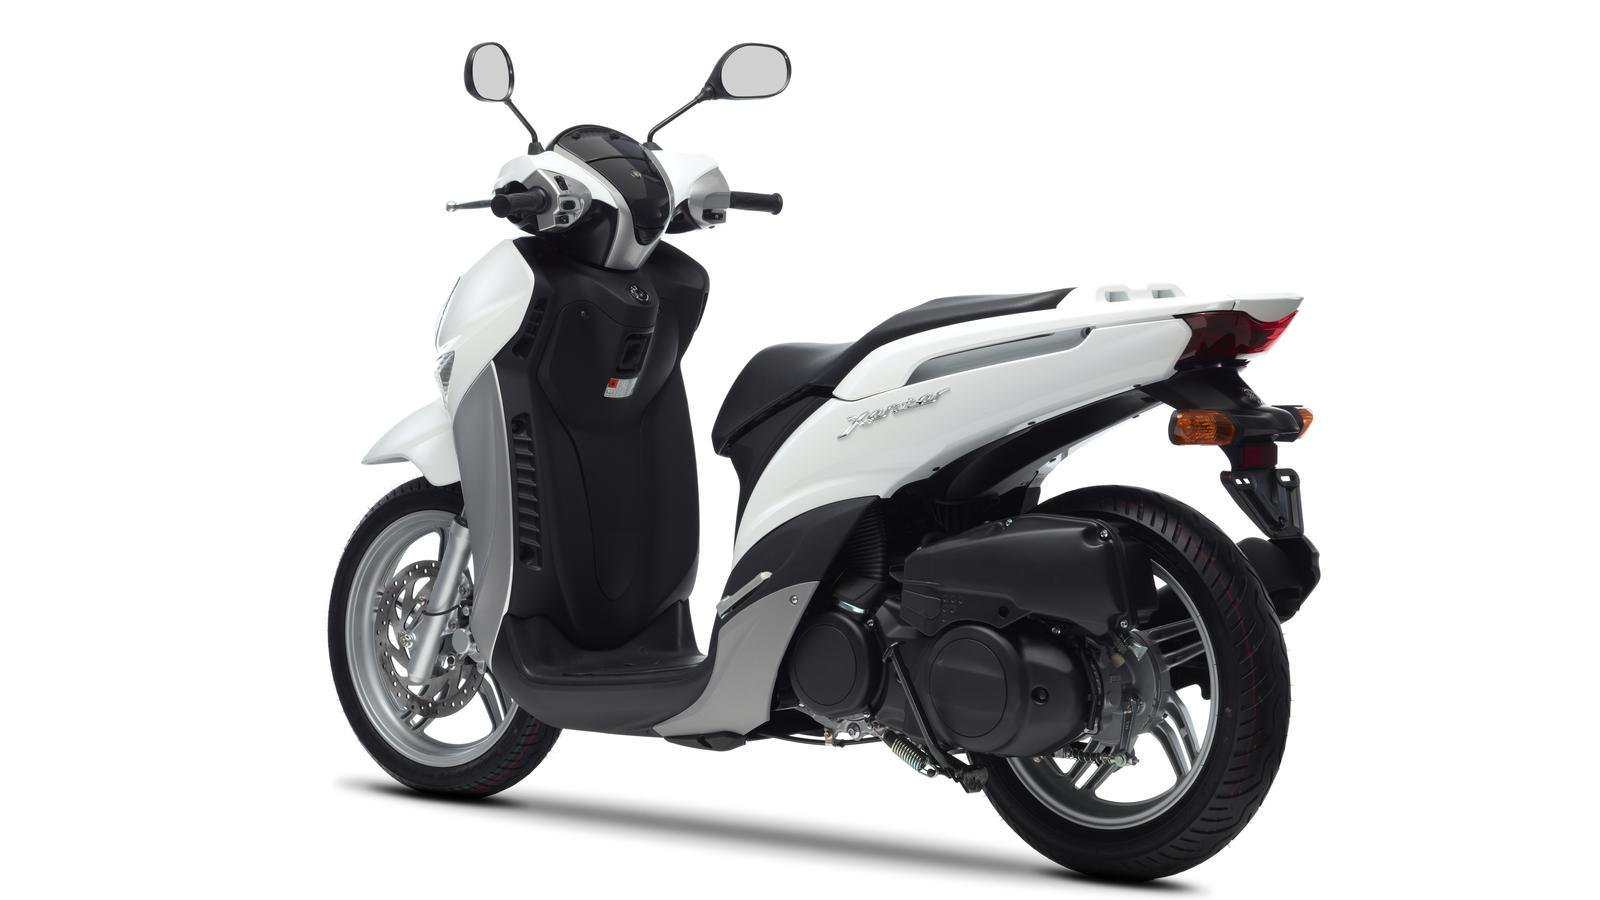 2012 yamaha xenter 125 picture 459315 motorcycle. Black Bedroom Furniture Sets. Home Design Ideas